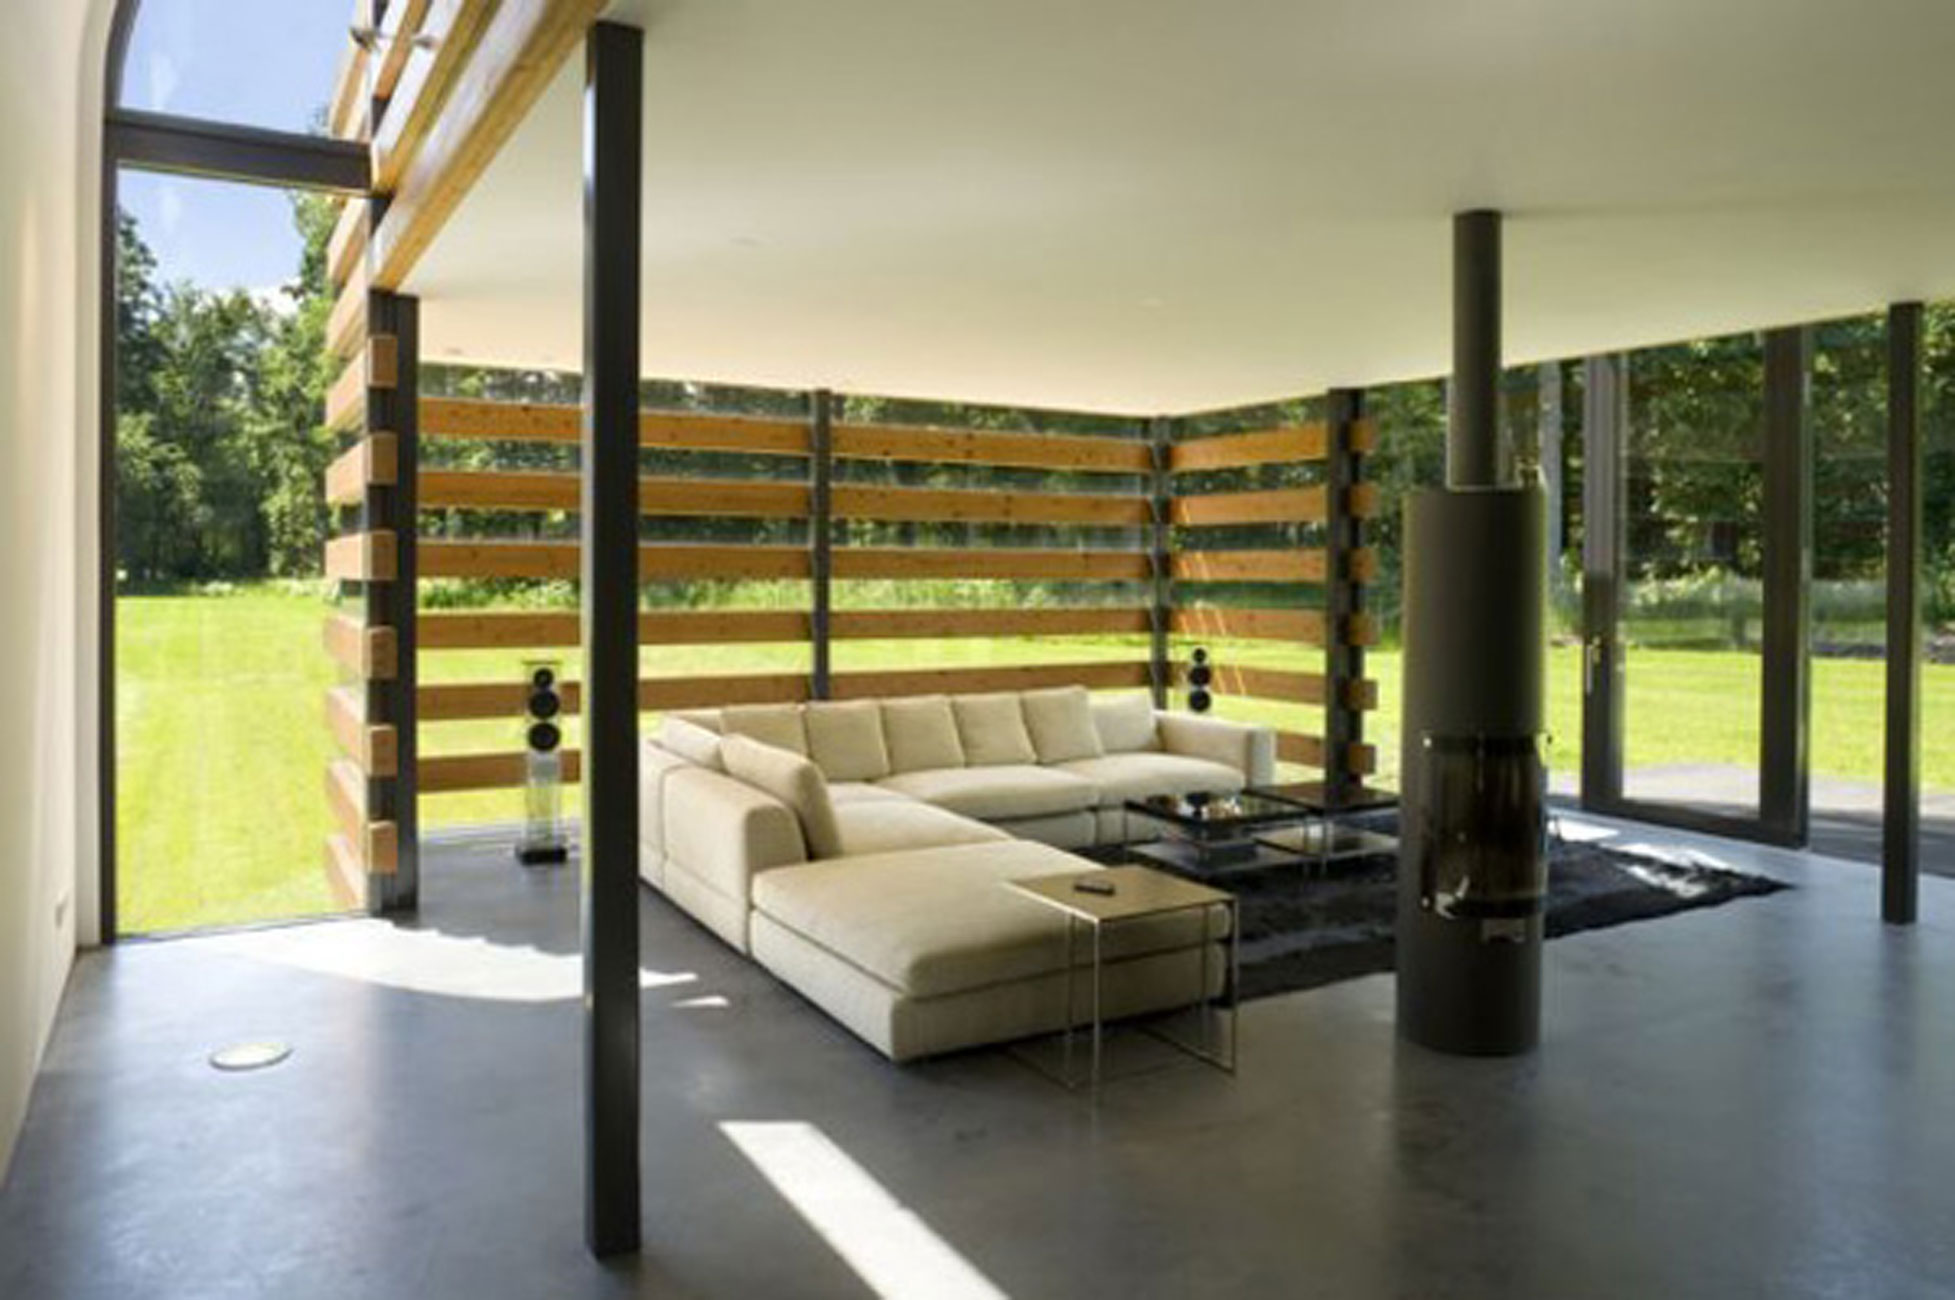 Redesigned Barn House into Modern House Design with Metal Roof - Living room | Viahouse.Com